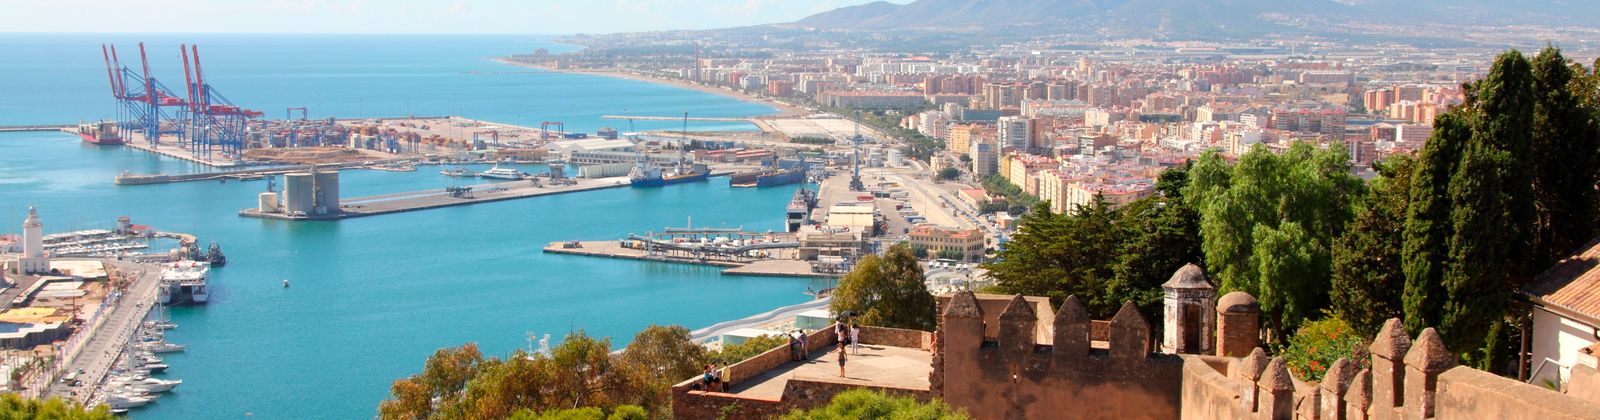 What to do in Malaga: a local's guide